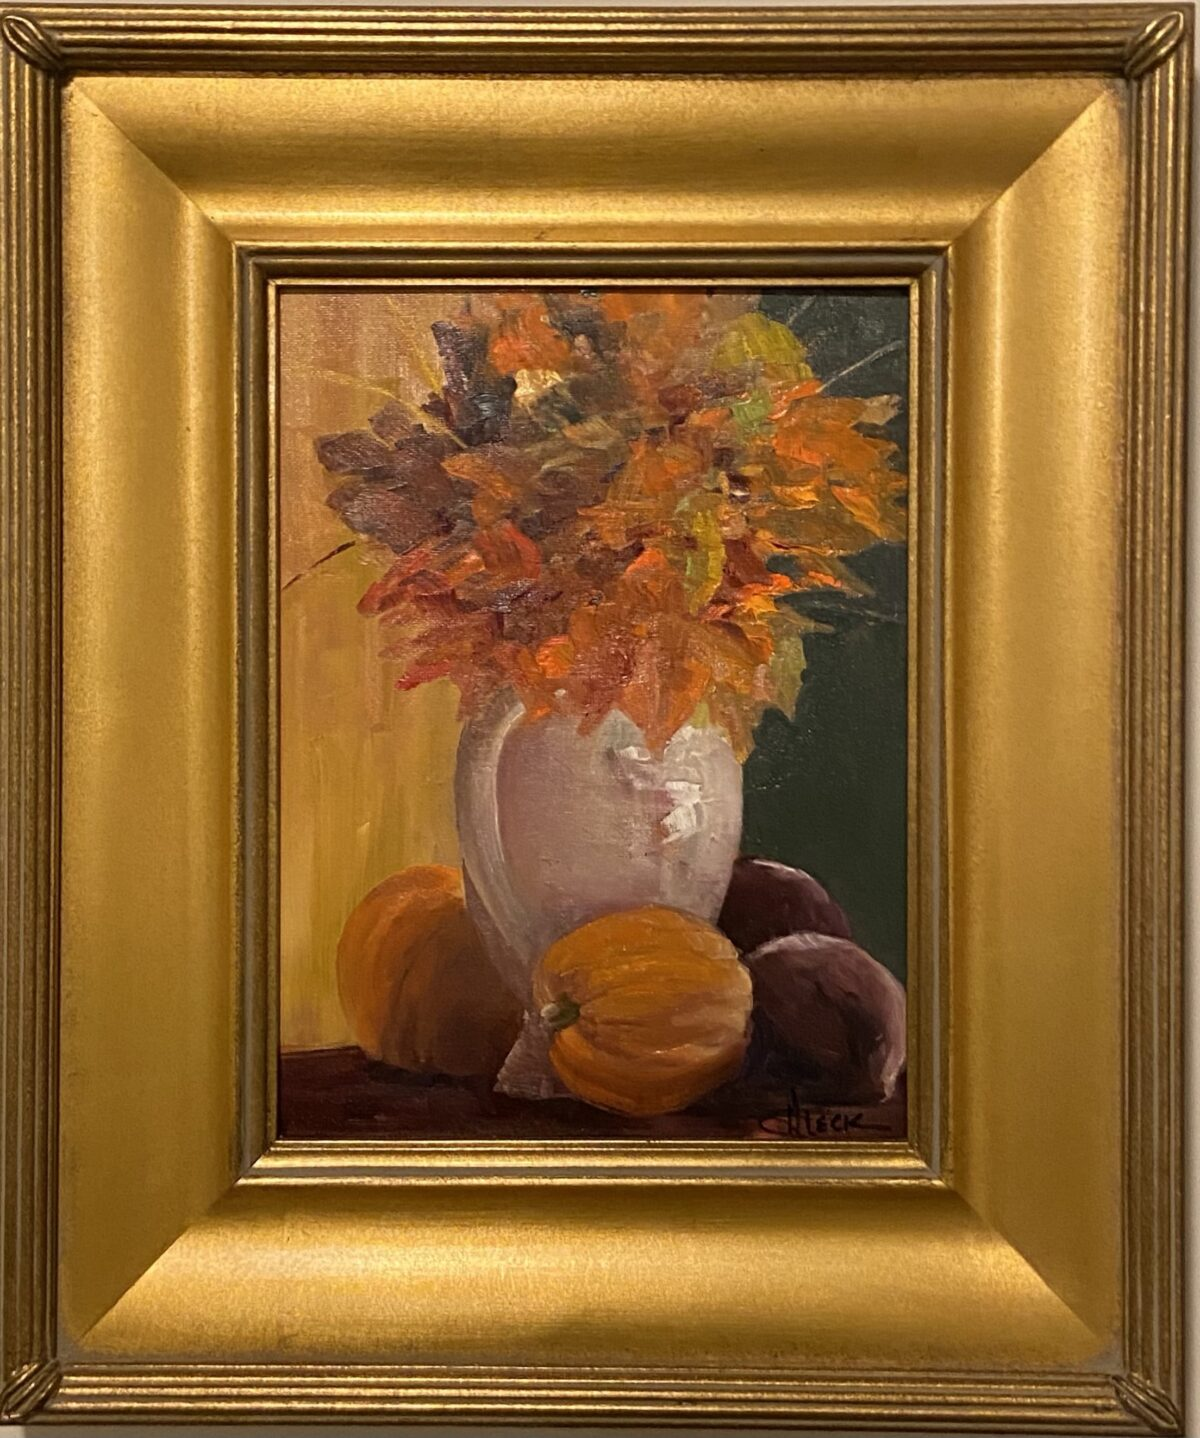 159 - Fall Bouquet - 12 x 9 - Still Life - NFS